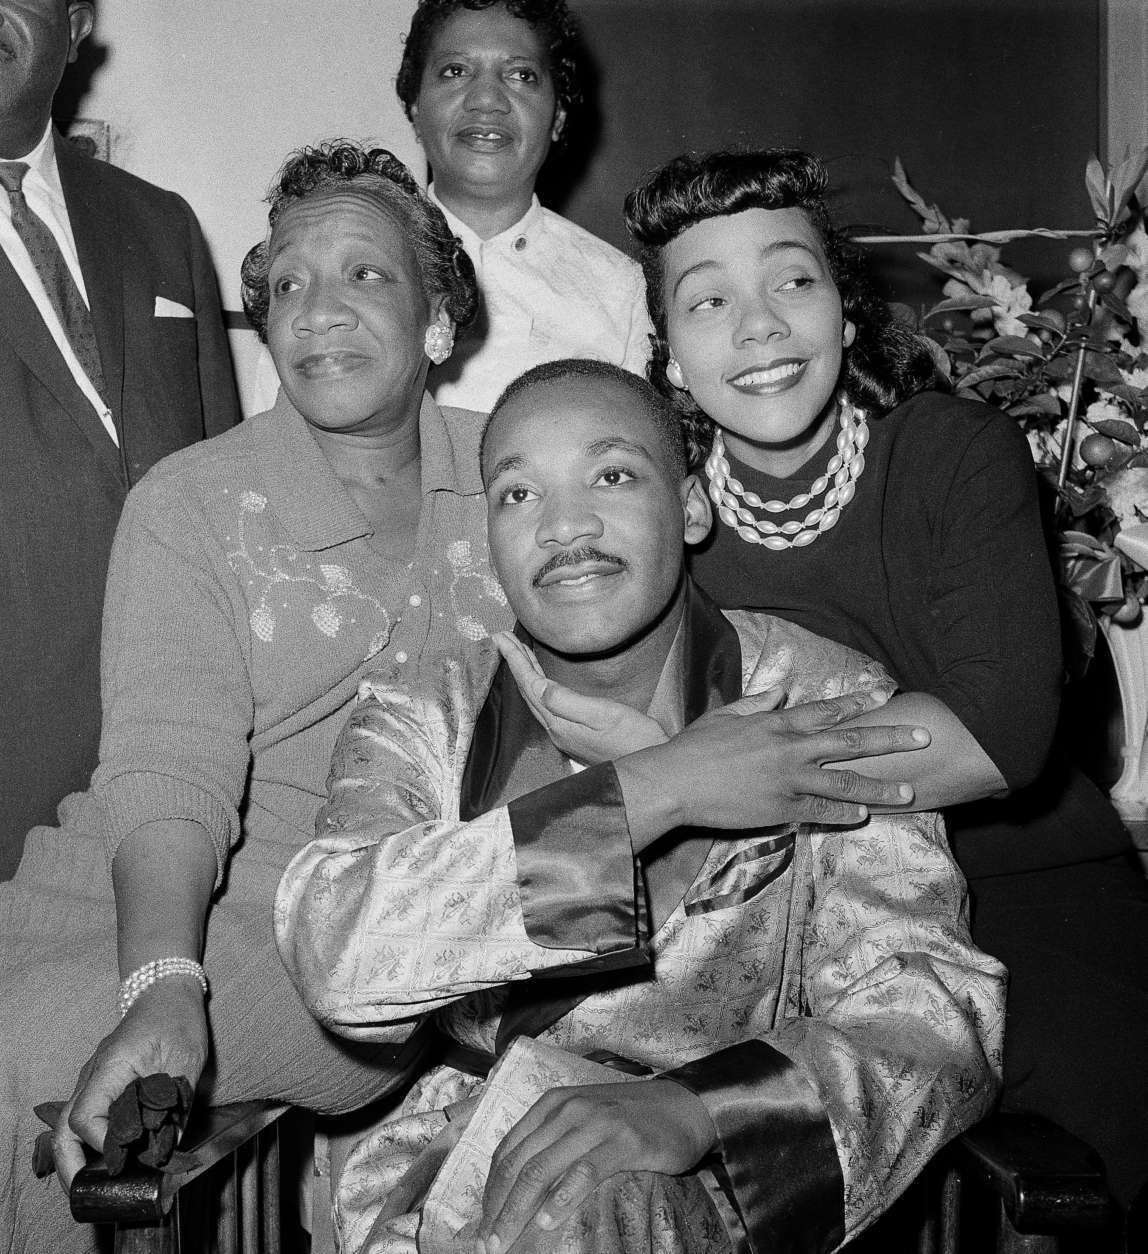 Dr. Martin Luther King, Jr., is embraced by his wife Coretta Scott King during a news conference at Harlem Hospital in New York, Sept 30, 1958, where he is recovering from a stab wound following an attack by a woman.  At left is his mother, Alberta Williams King.  (AP Photo/Tony Camerano)